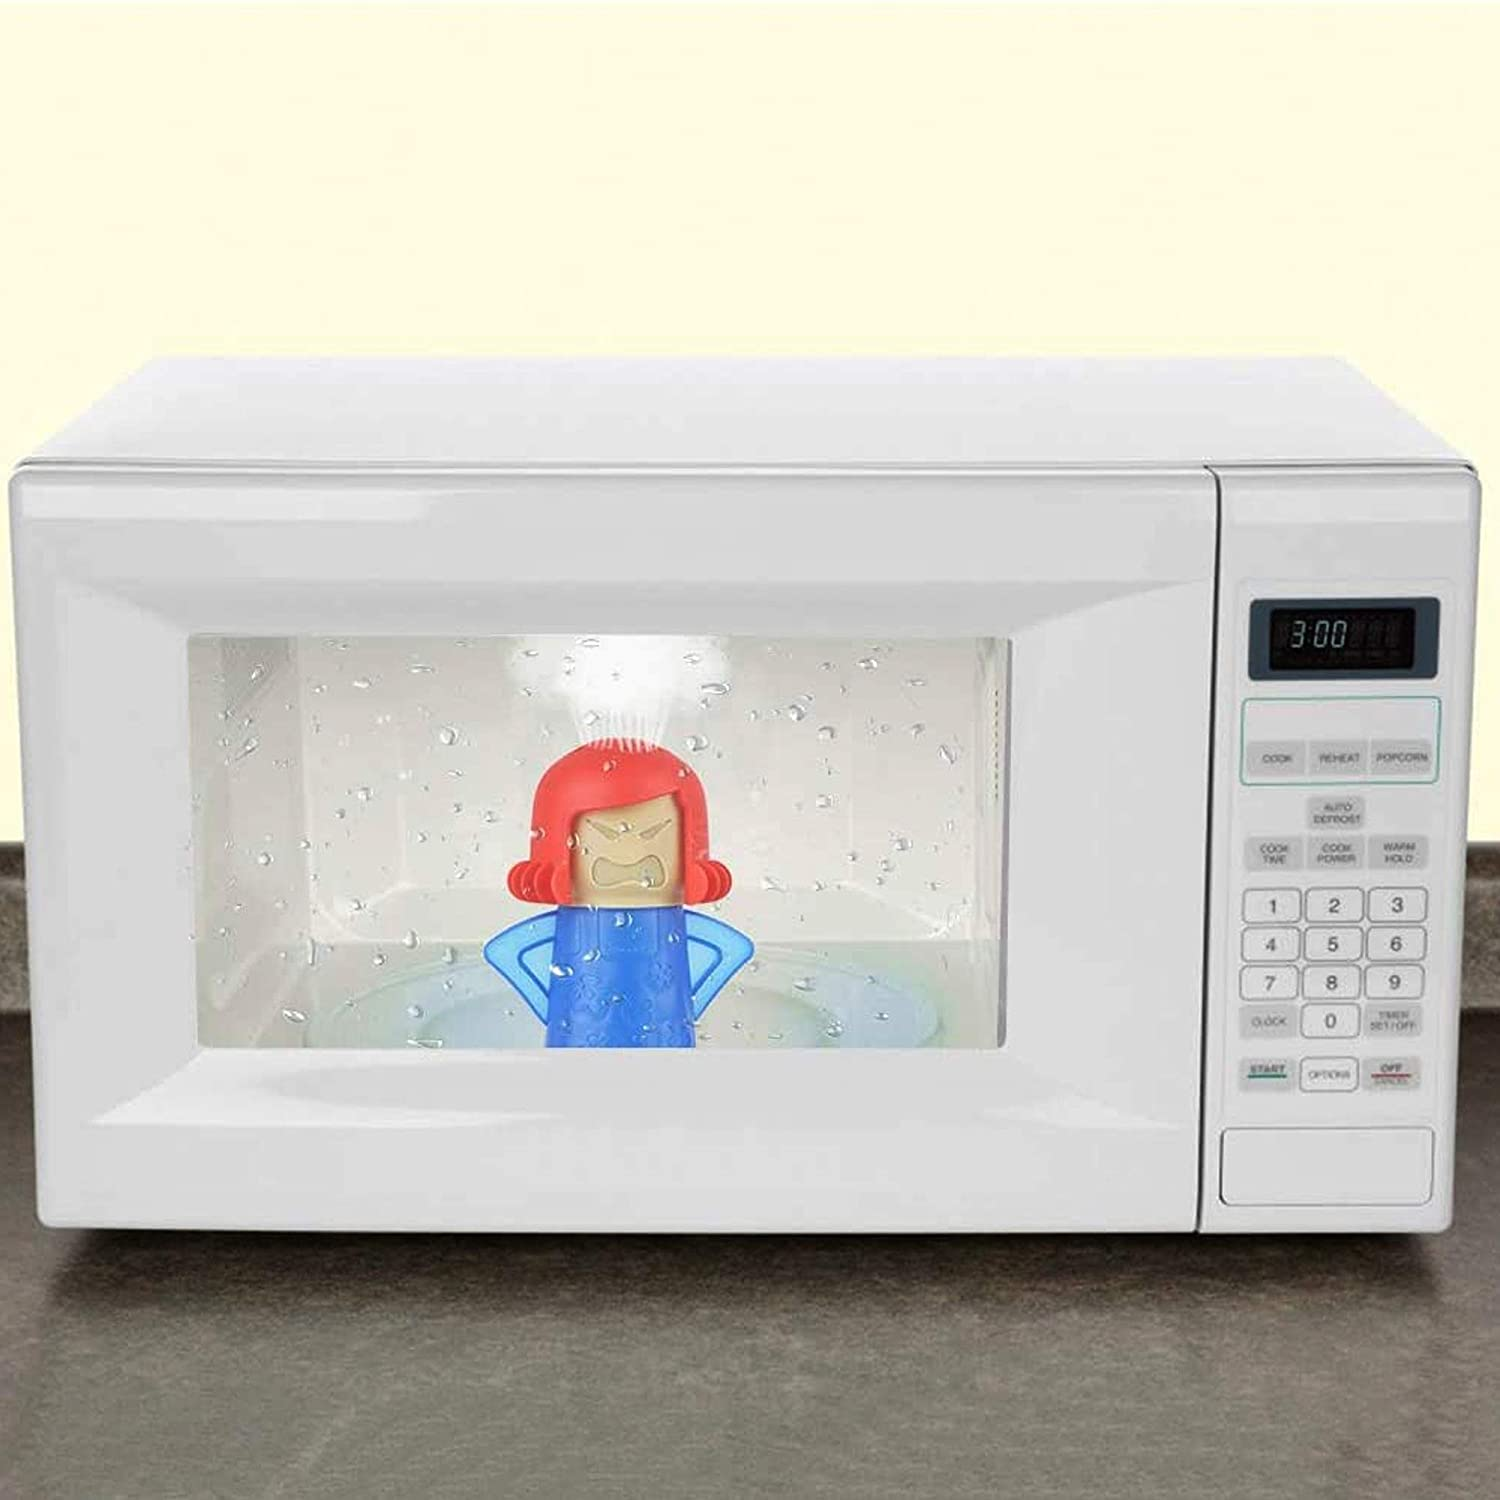 Angry Mama Microwave Cleaner Uses Steam To Clean The Crud Off Microwave